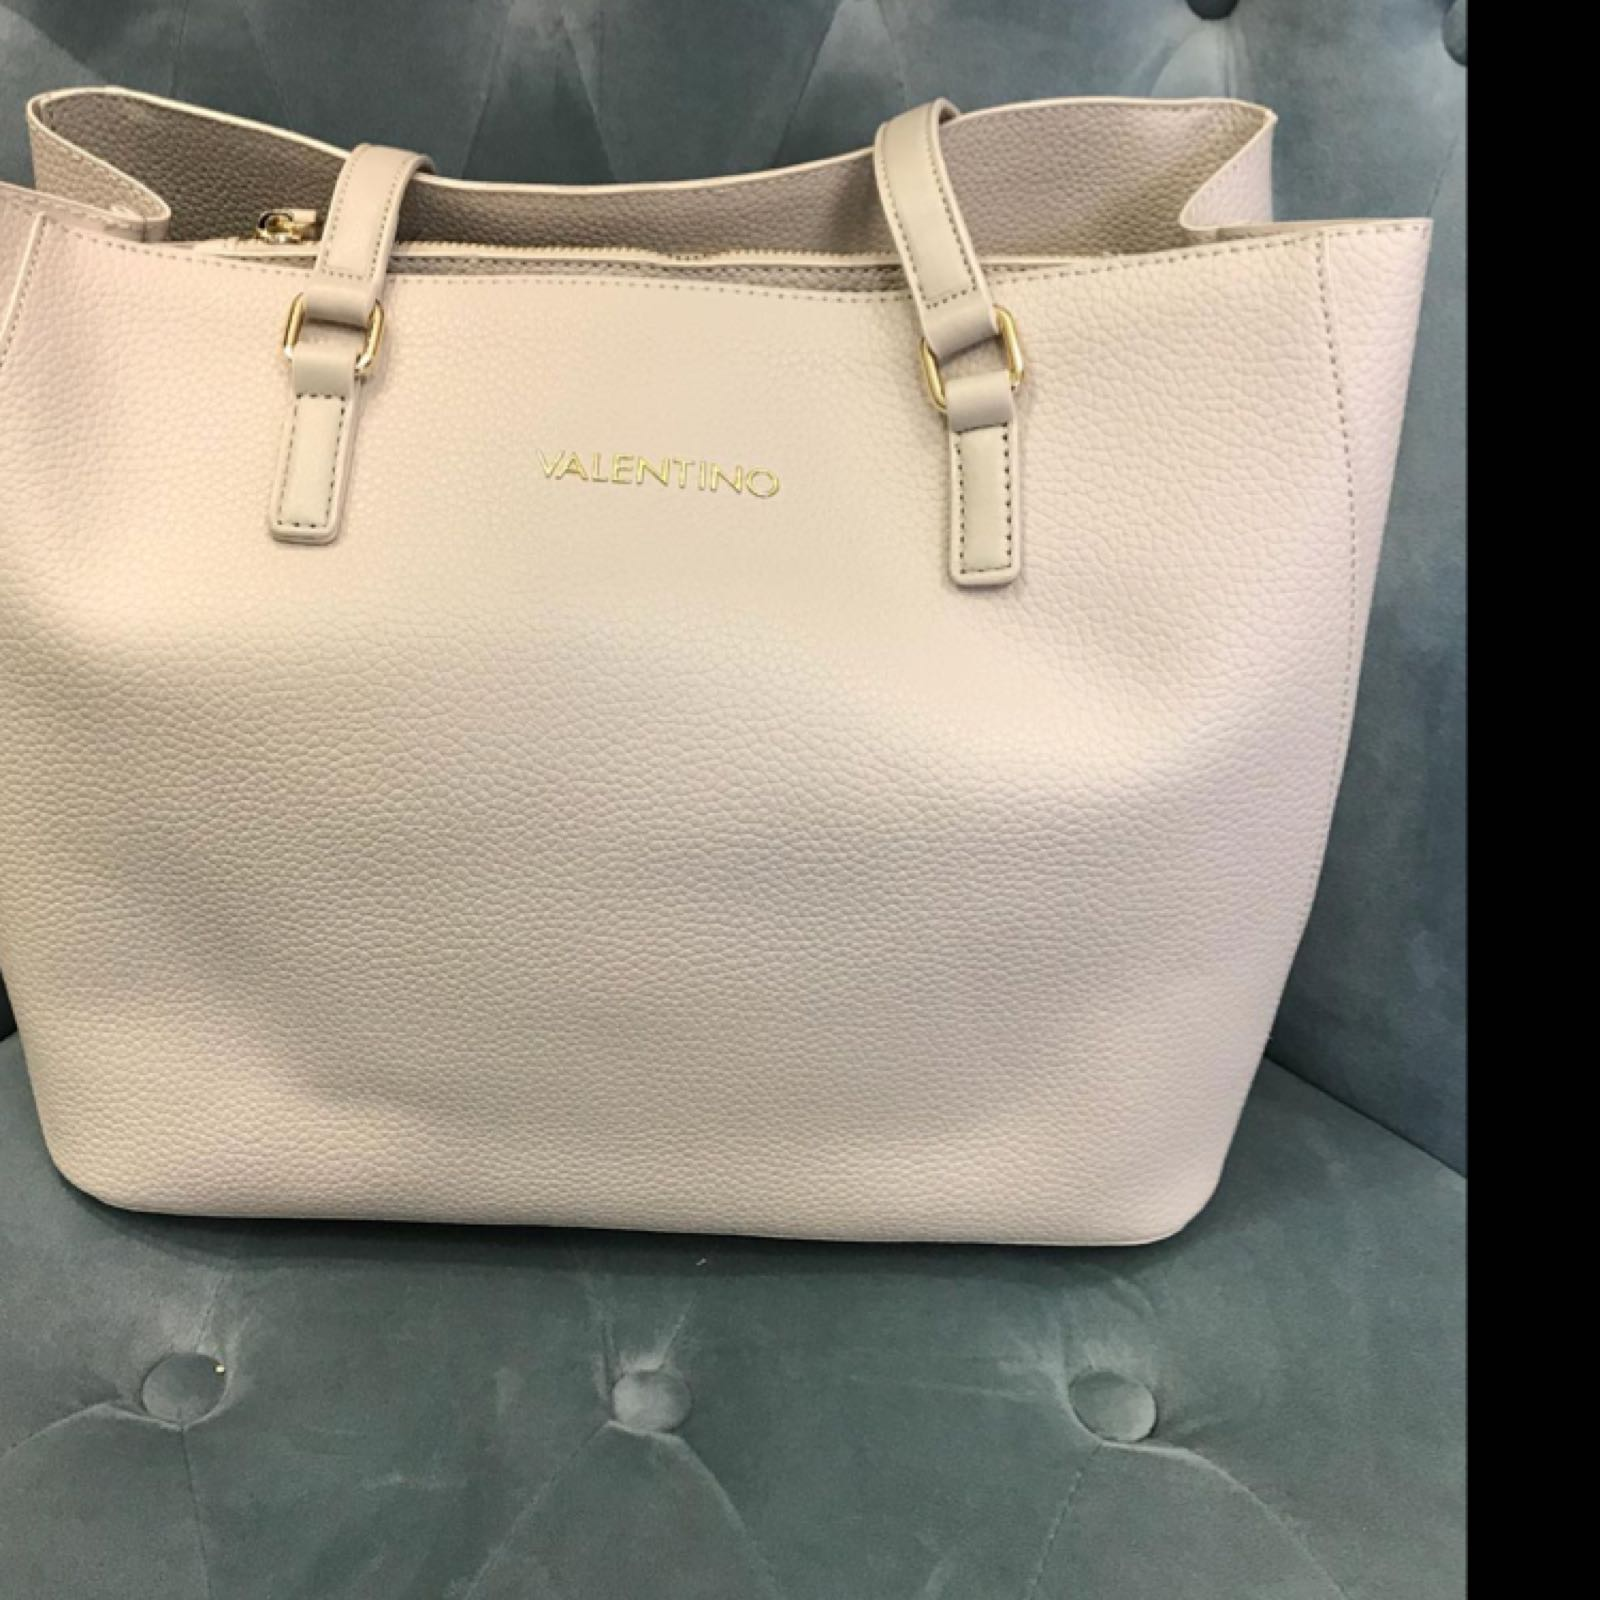 Valentino Superman Large Tote Bag Ghiaccio